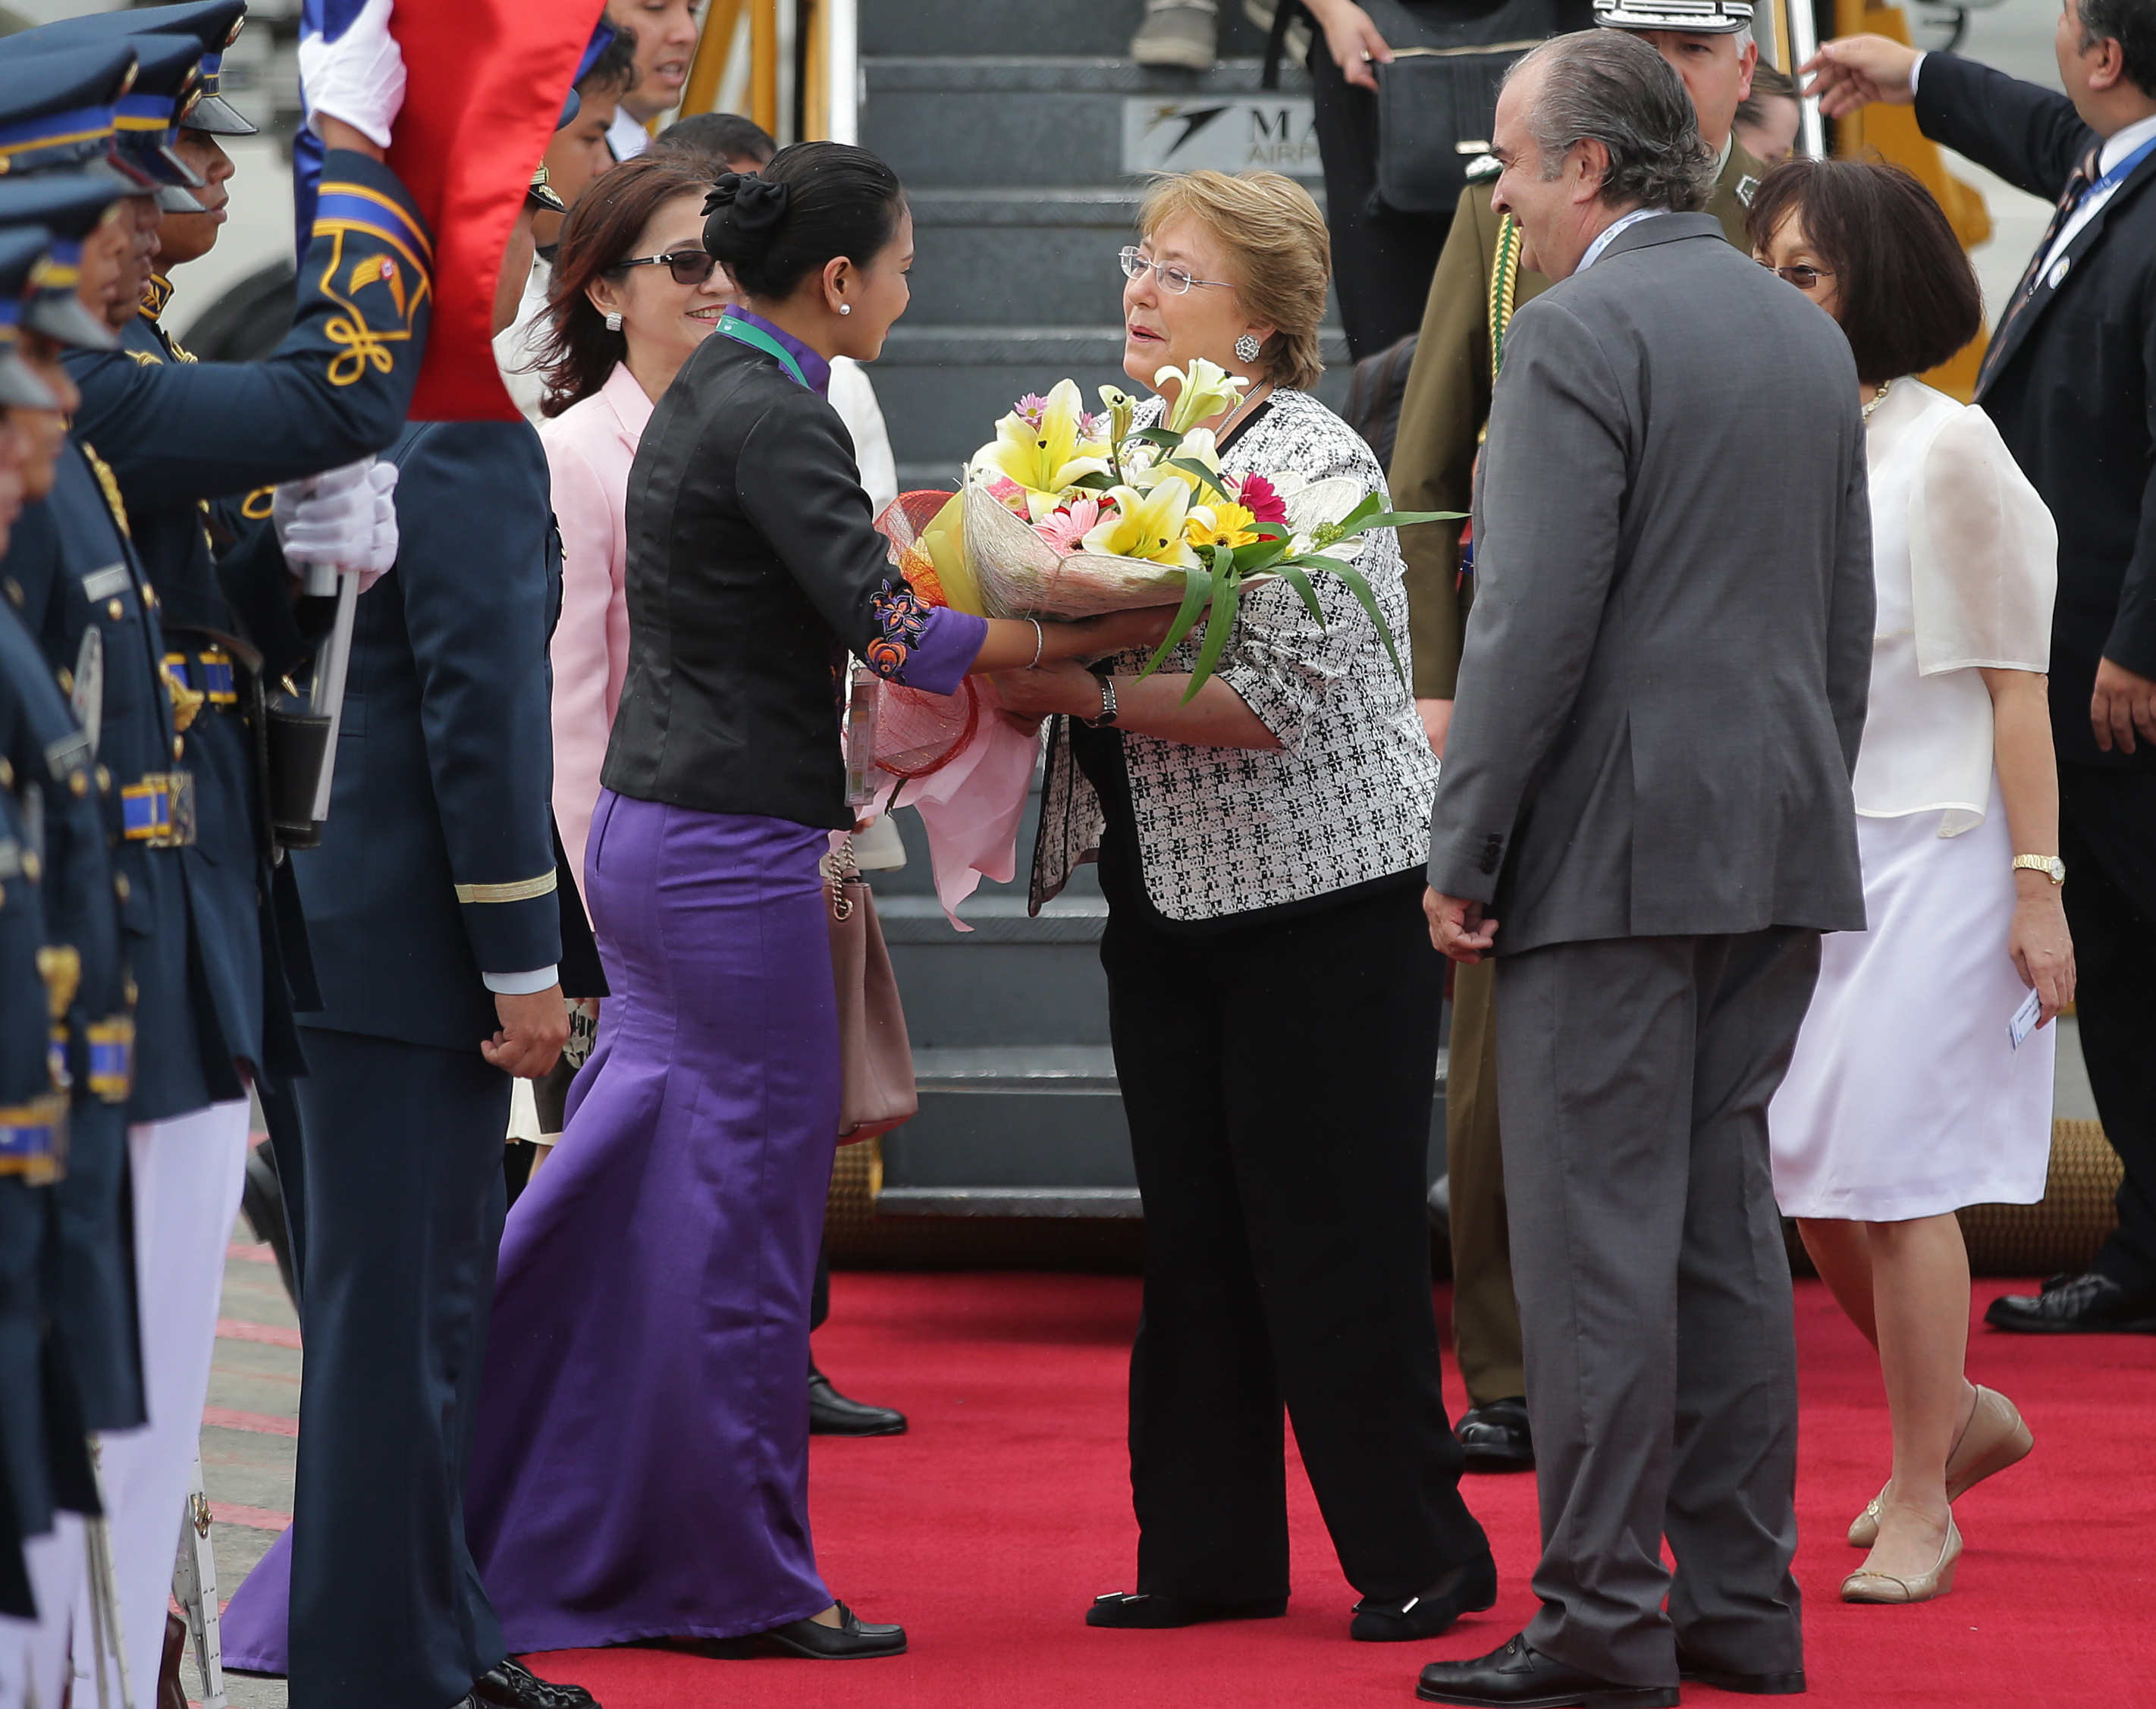 Chile's President Michelle Bachelet, center right, receives flowers as she arrives at Manila's international airport, Philippines, Nov. 15, 2015.